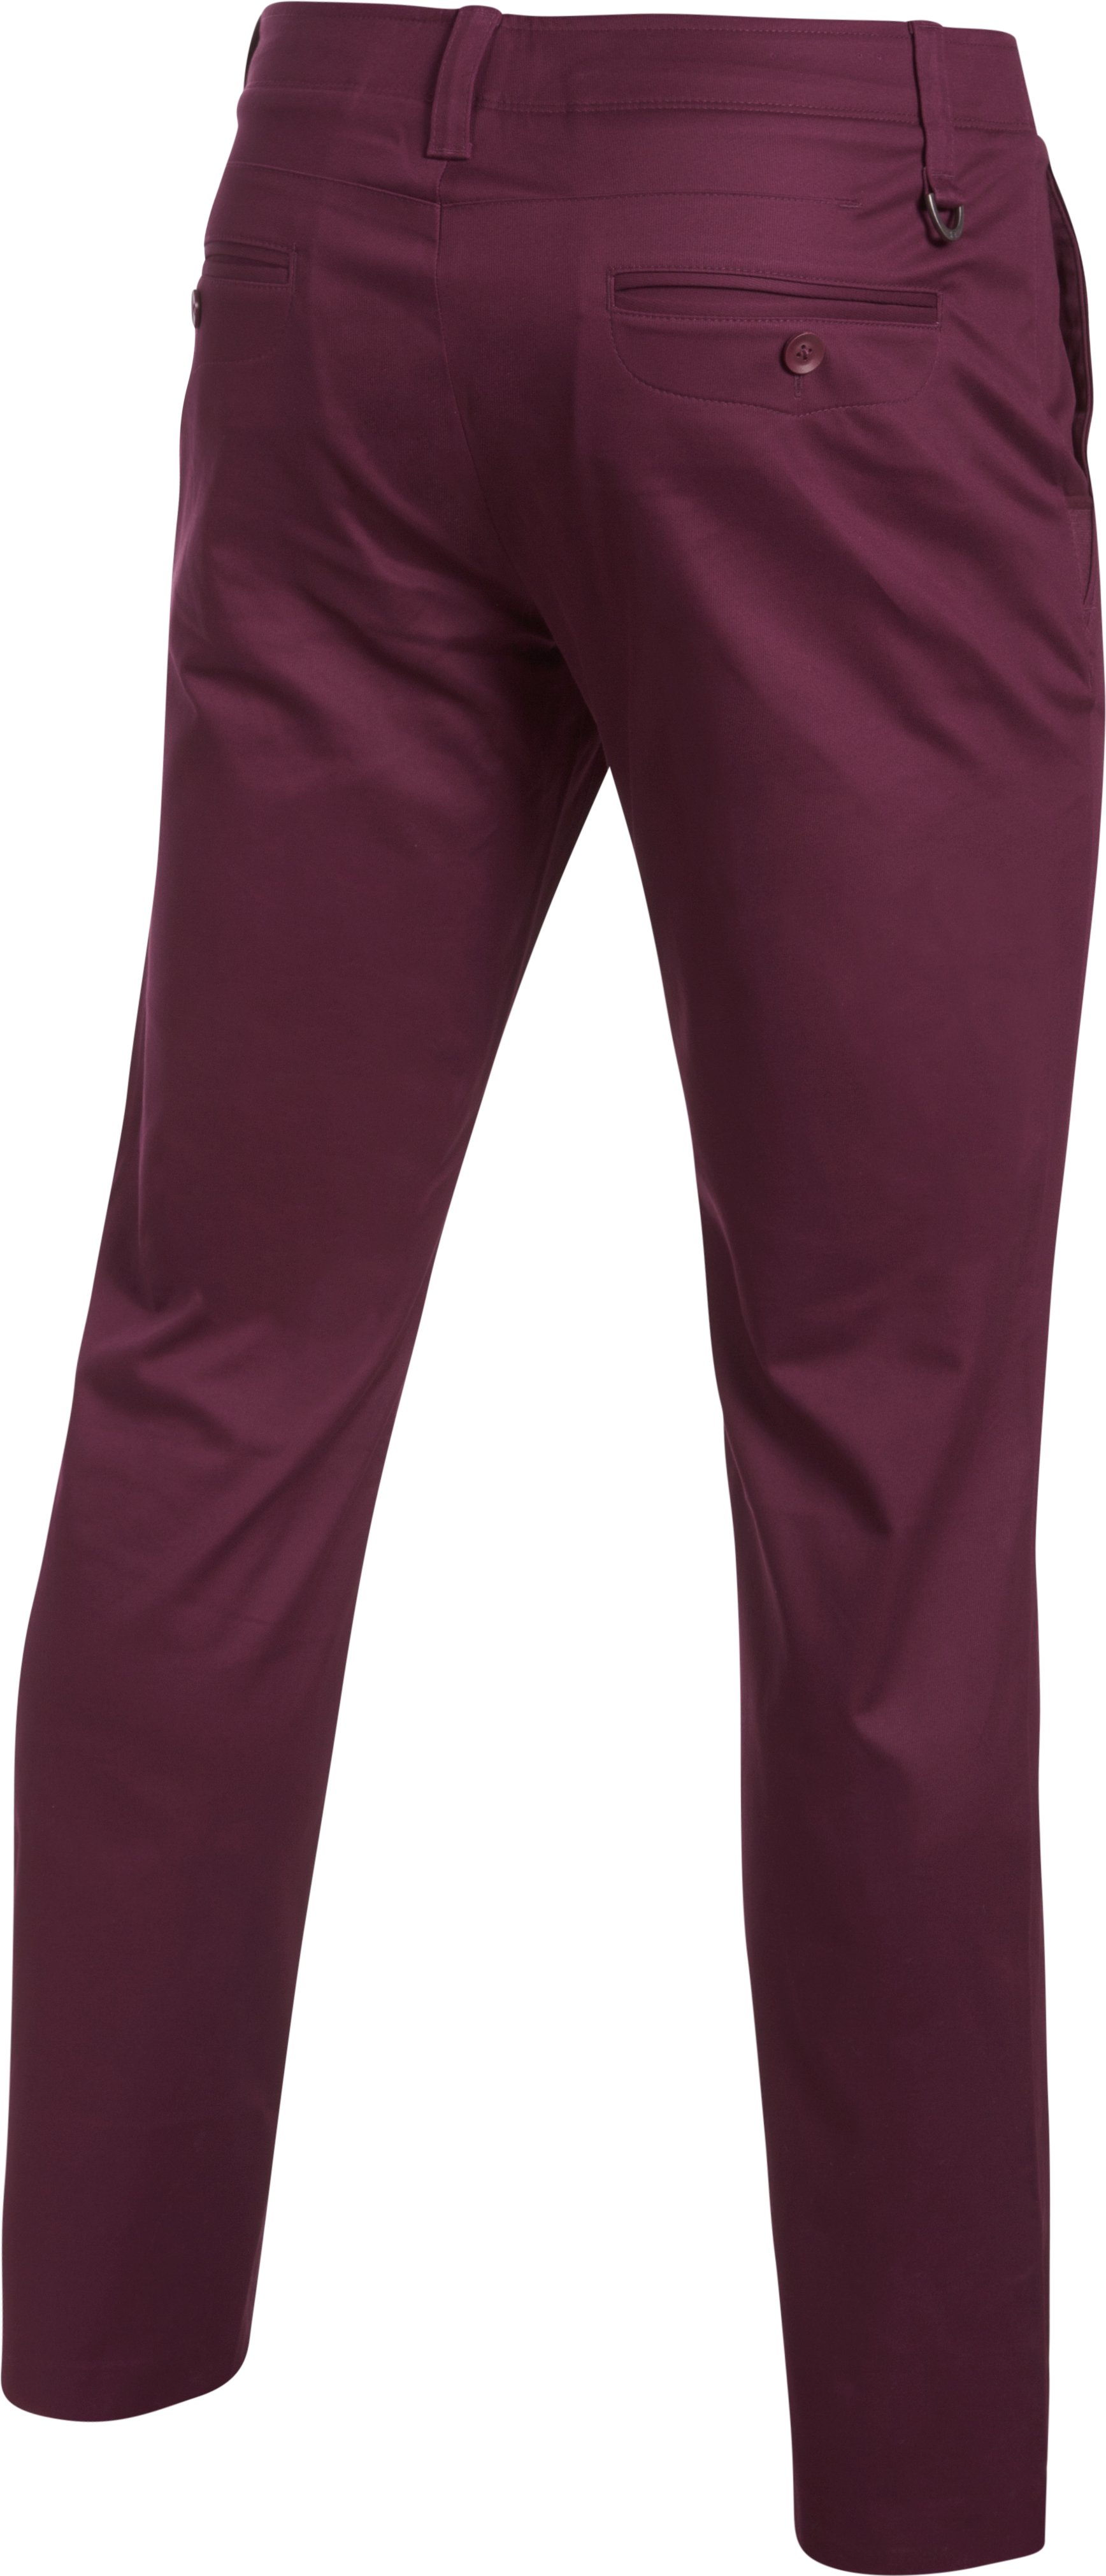 Men's UA Performance Chino — Tapered Leg, RAISIN RED, undefined